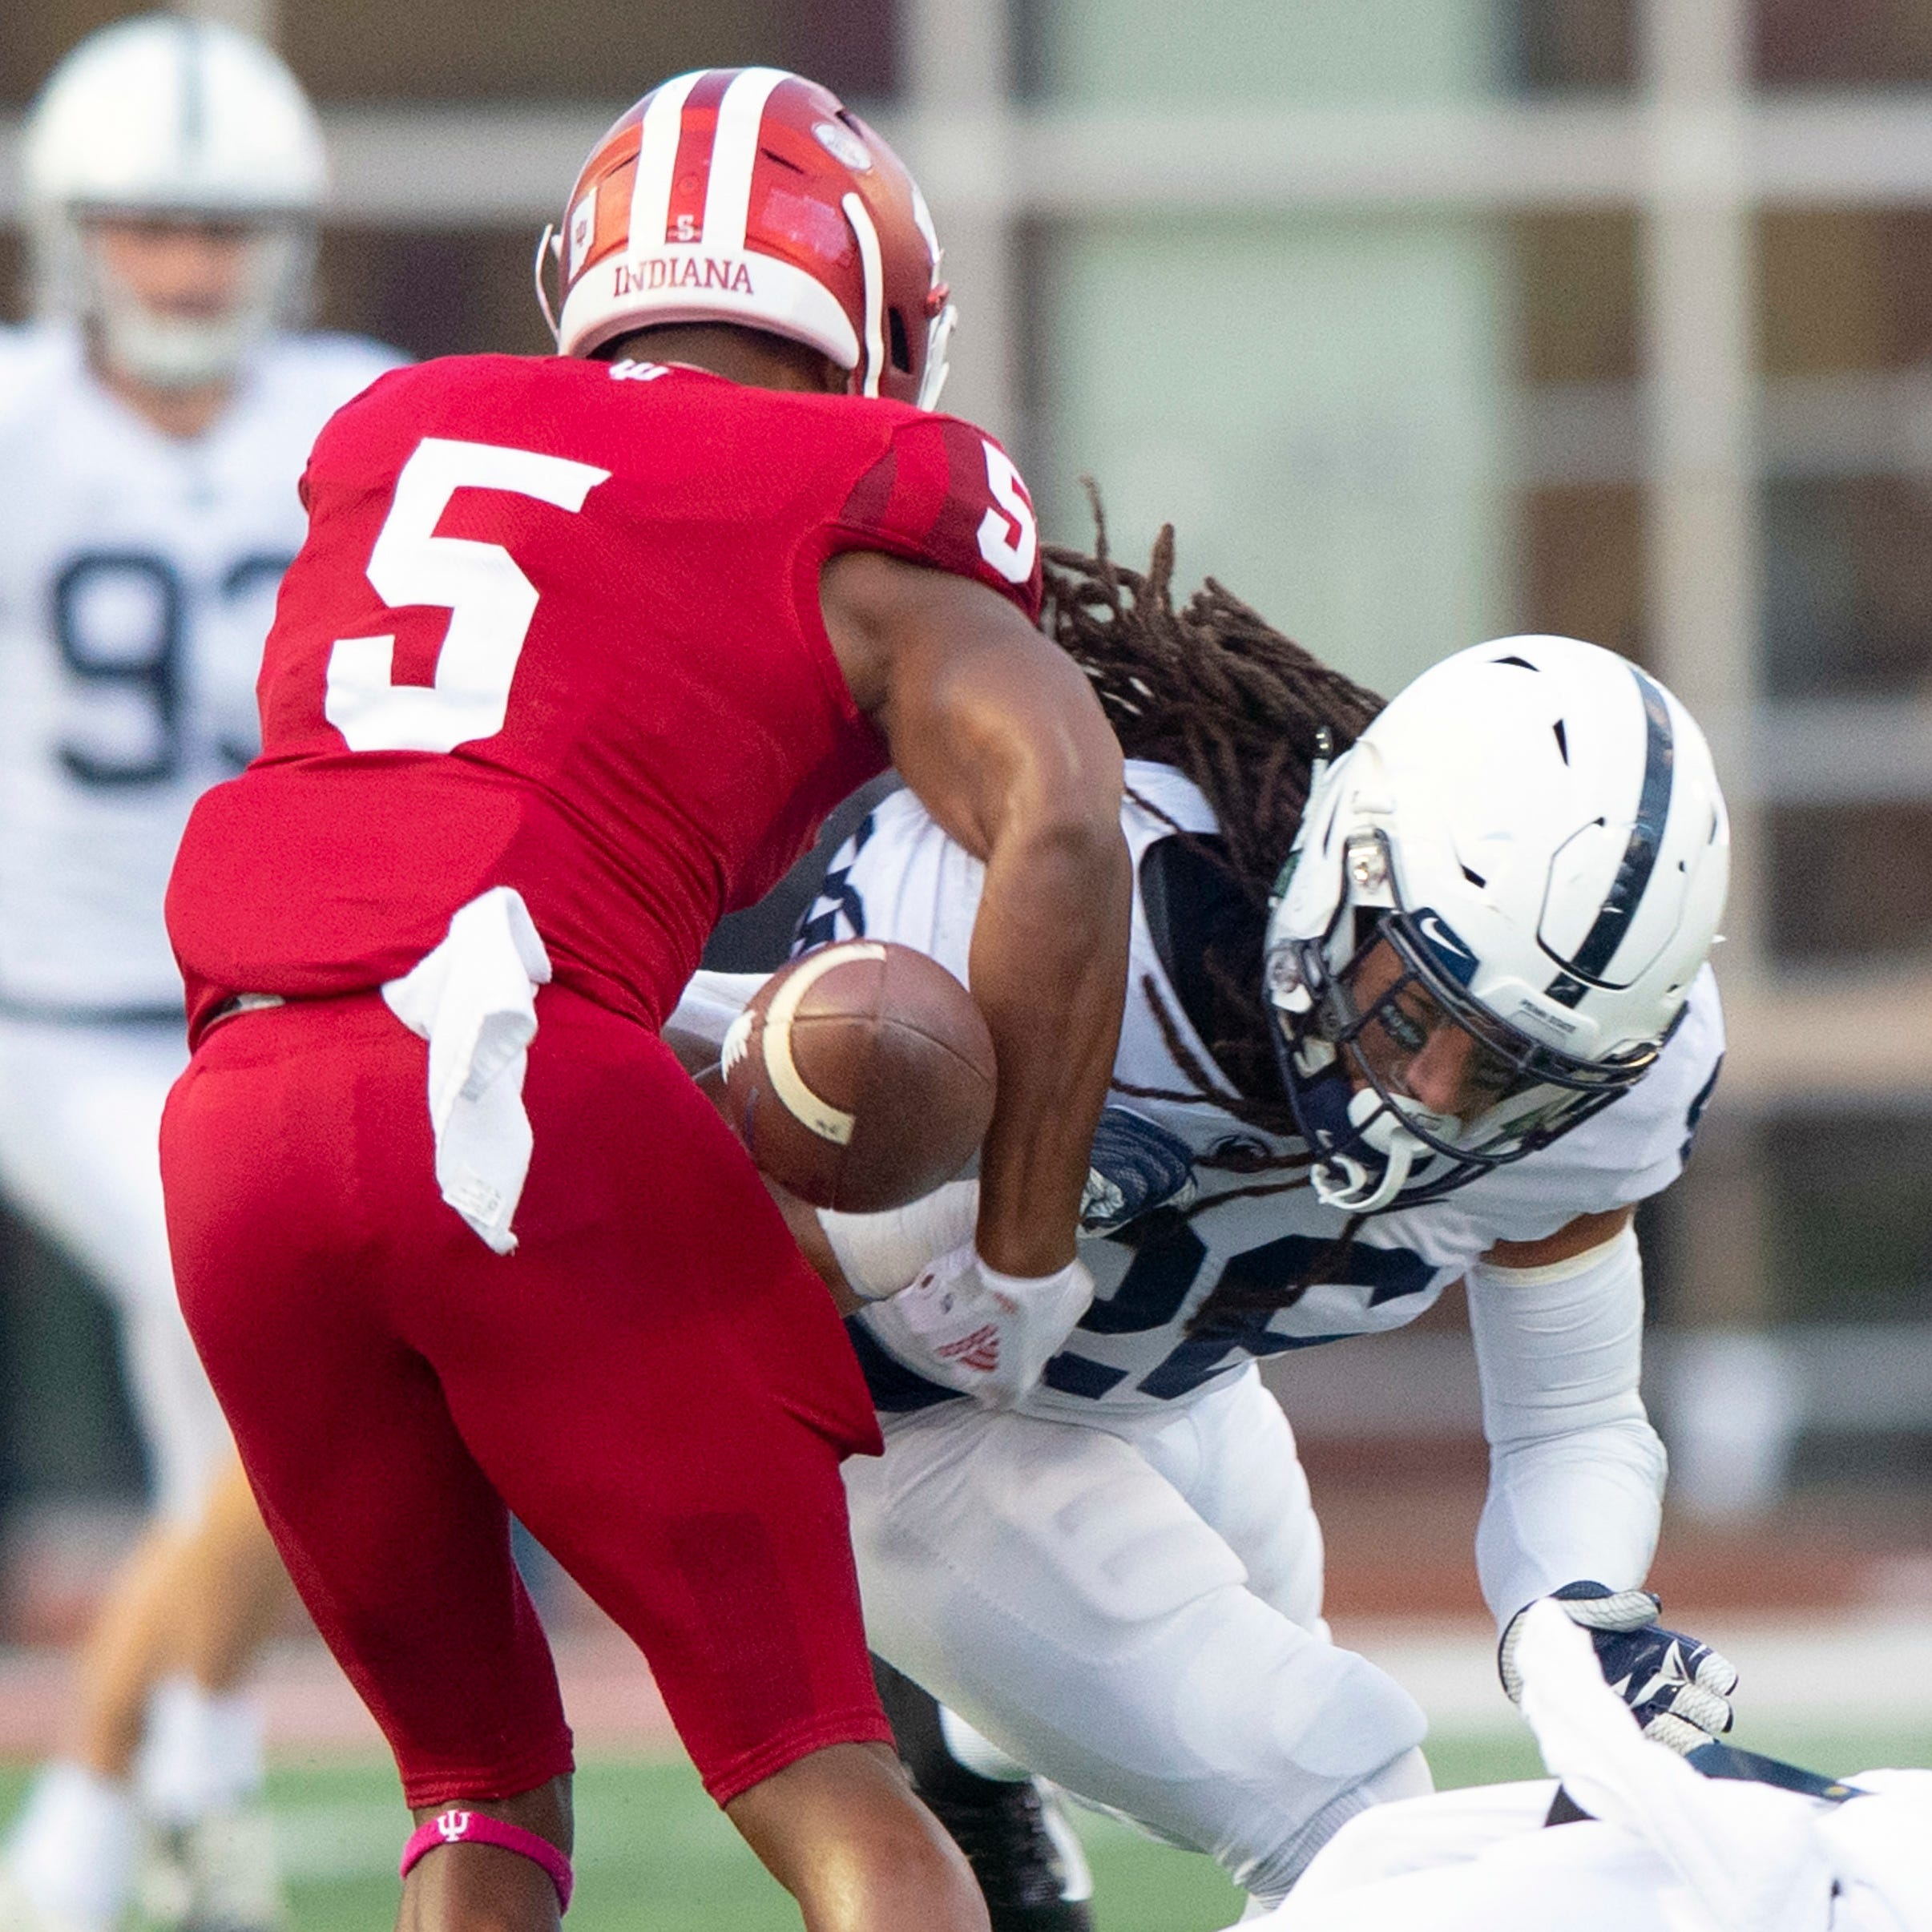 Report card: IU offense, defense gains undone by special teams gaffes in loss to Penn State